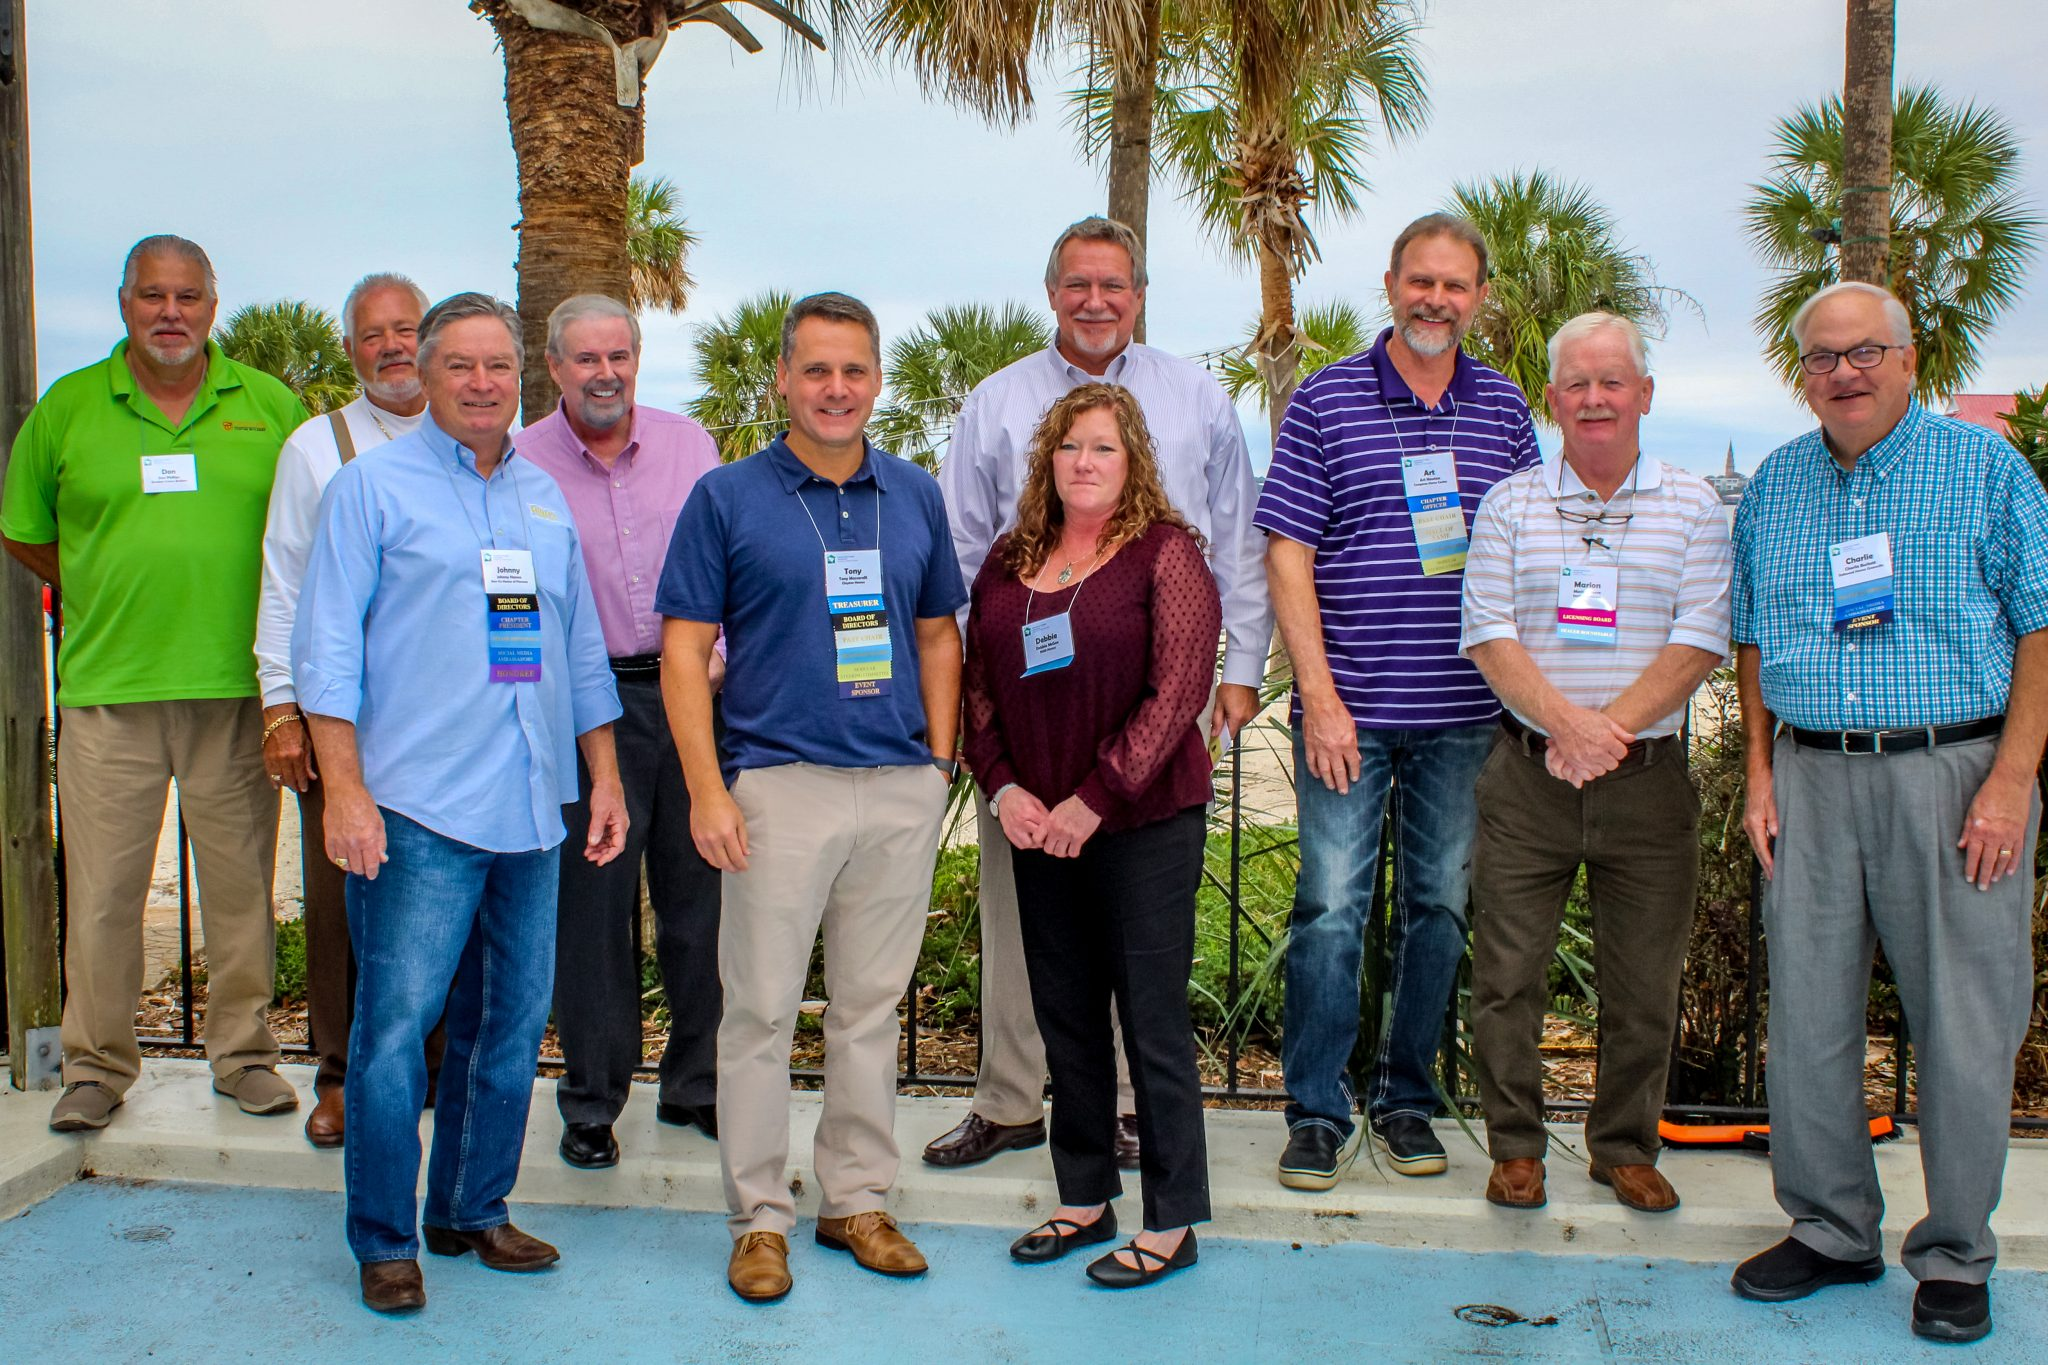 MHISC Committees, Board of Directors Make Key Decisions for Industry